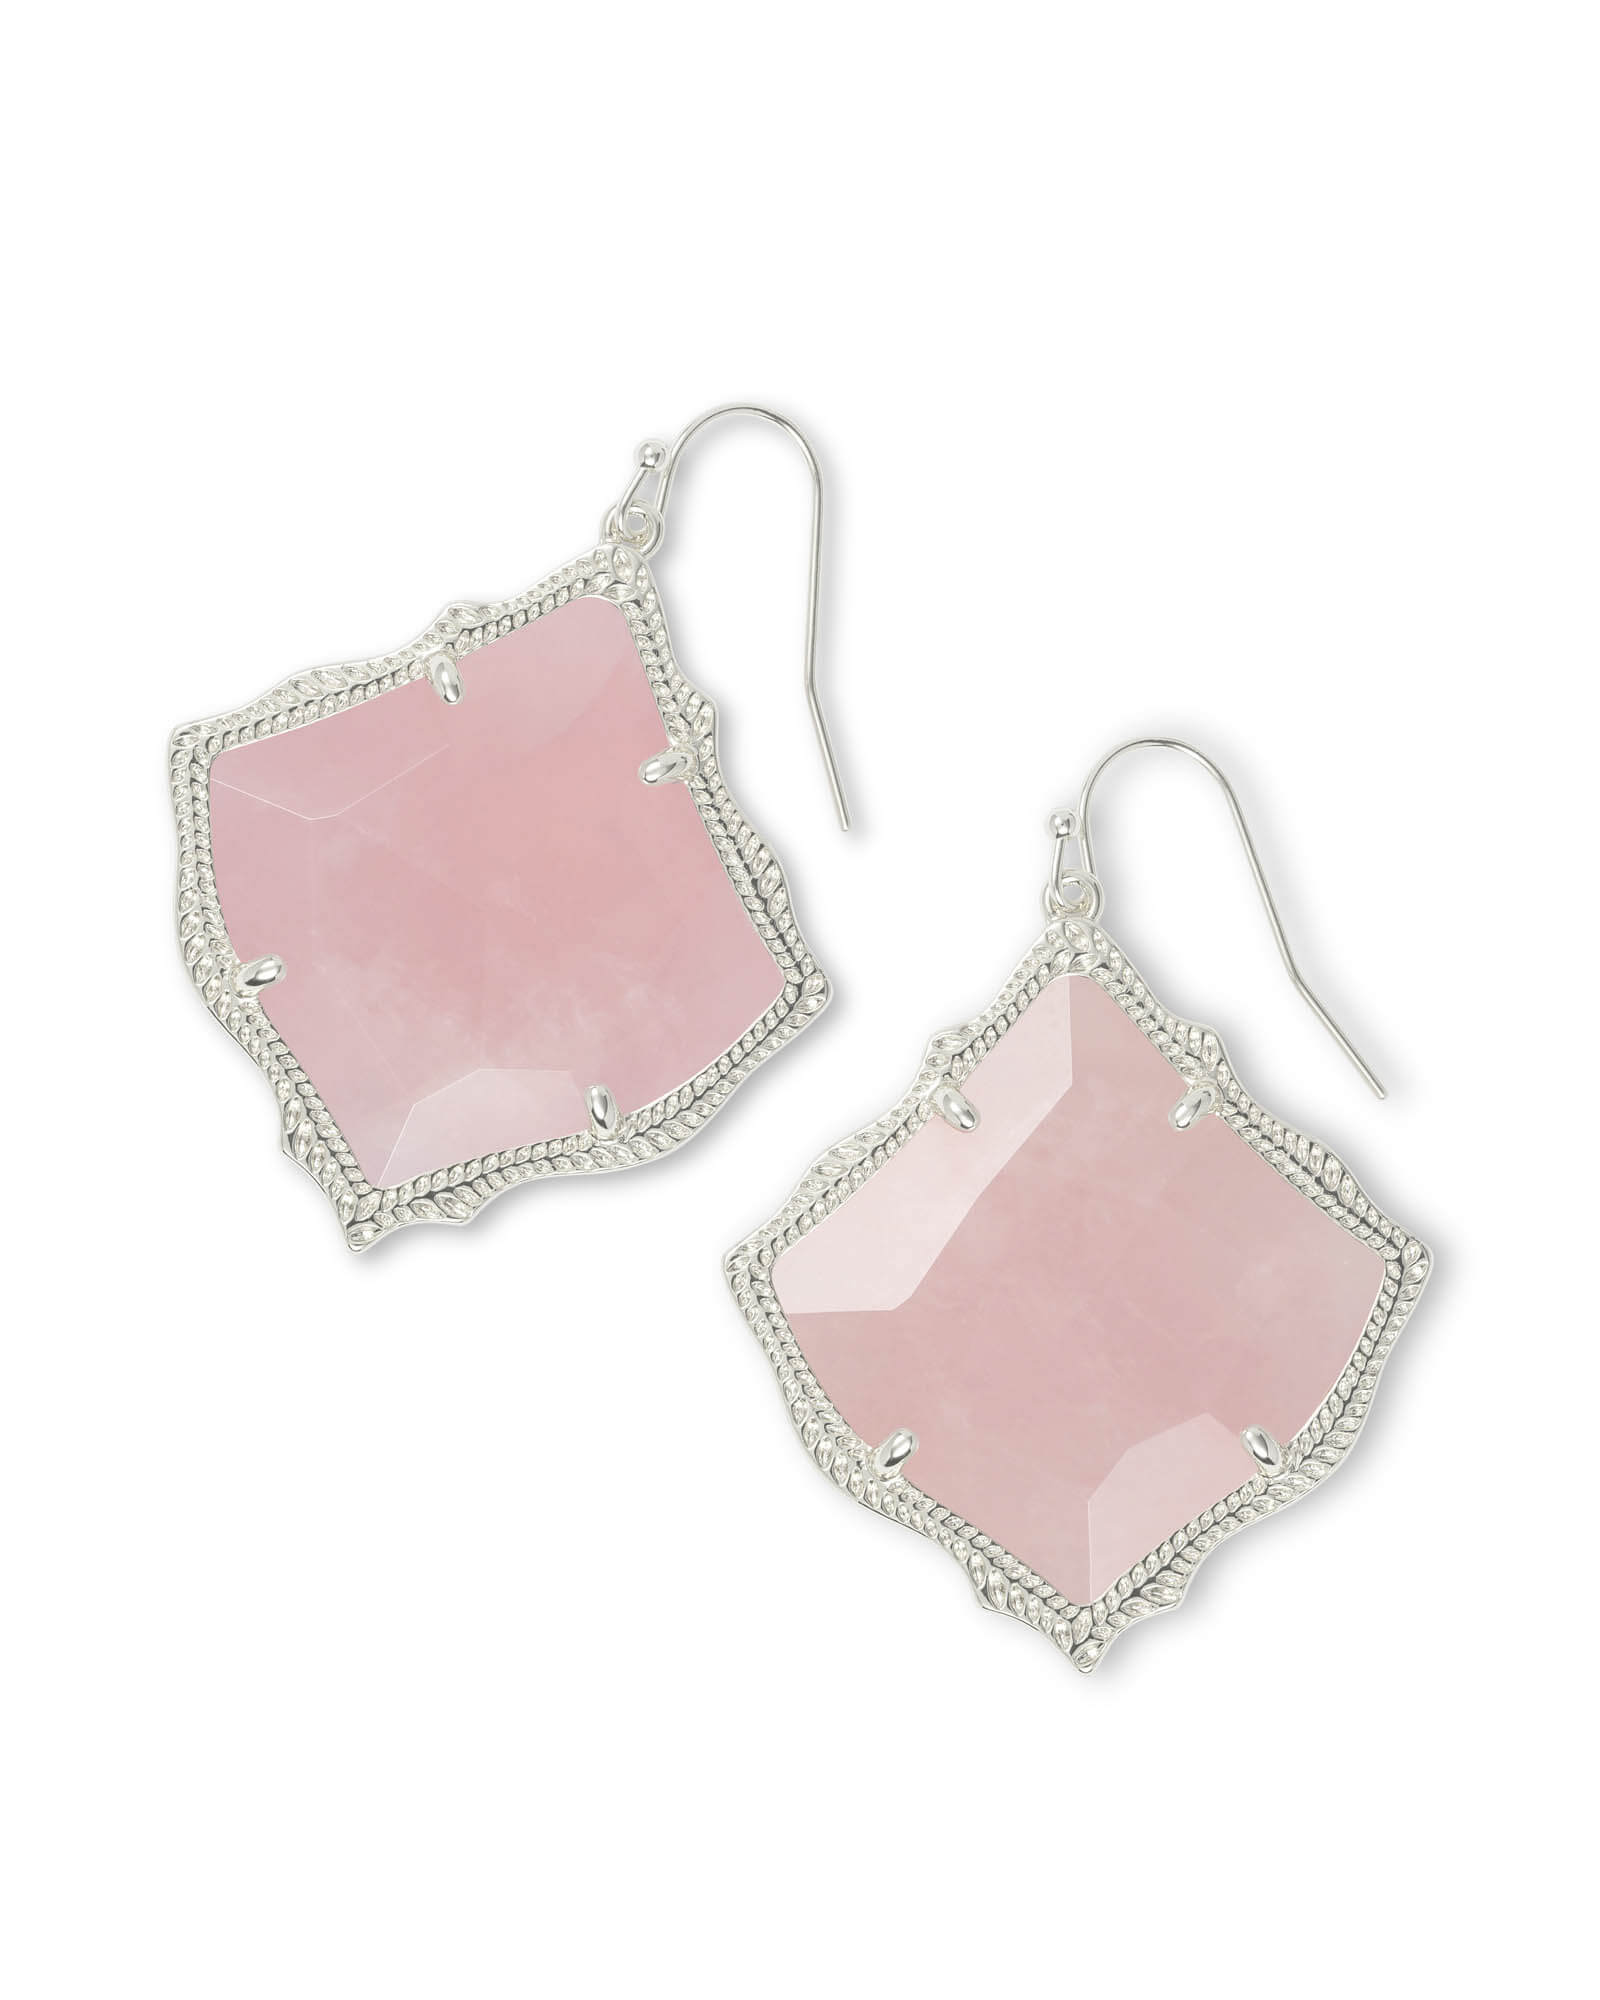 Kirsten Silver Drop Earrings in Rose Quartz